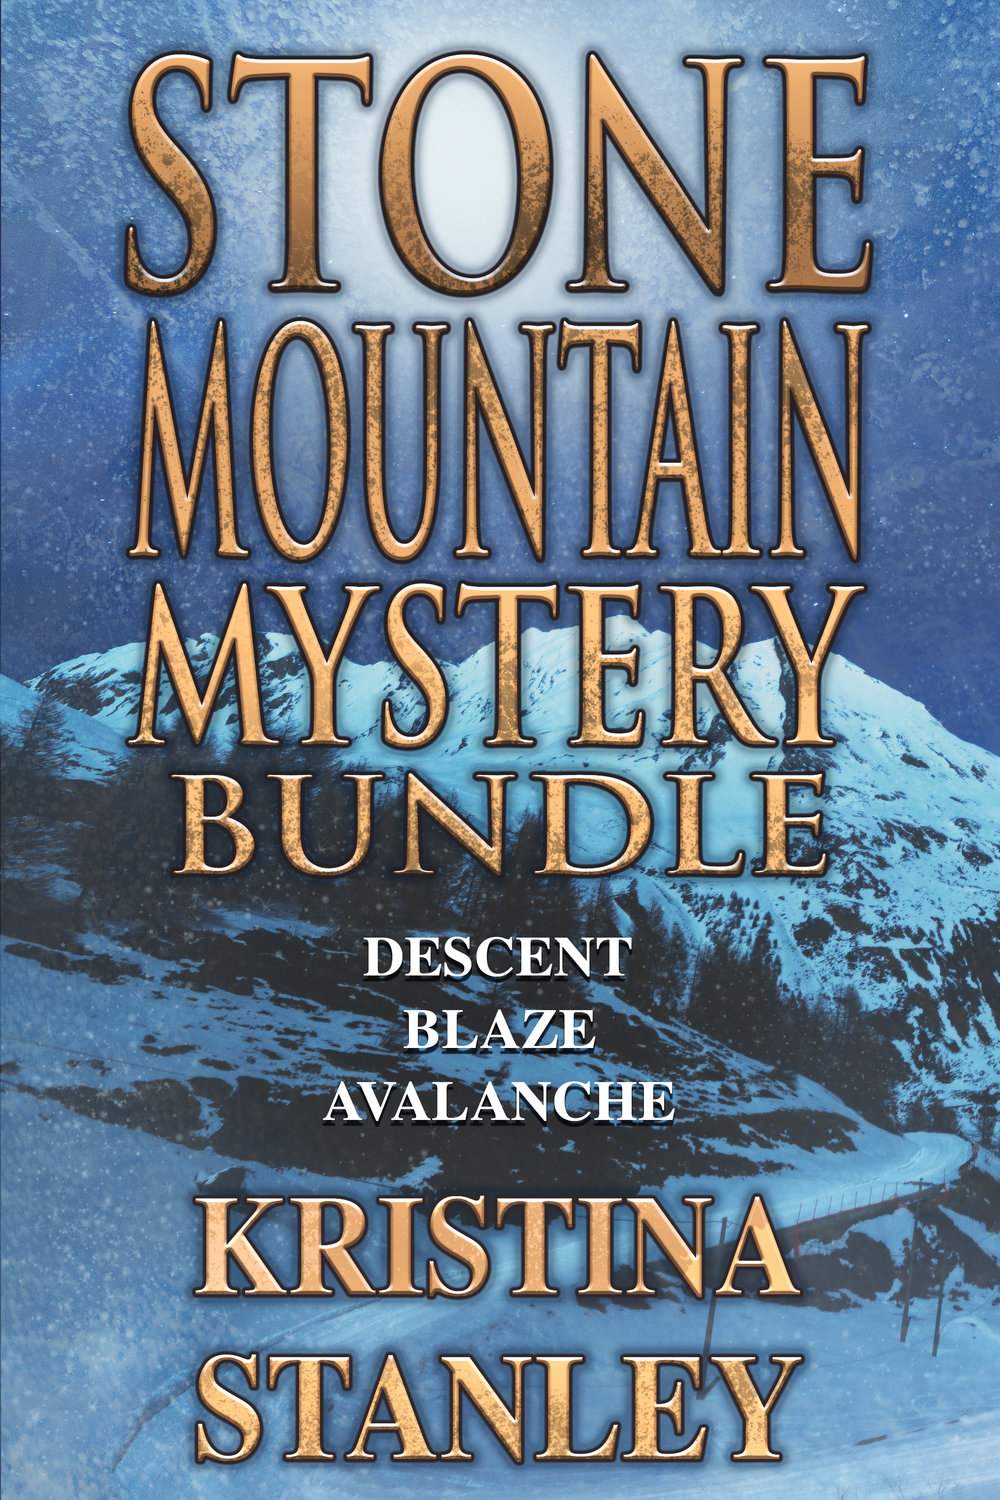 Stone Mountain Mystery Bundle Front  Cover.jpg